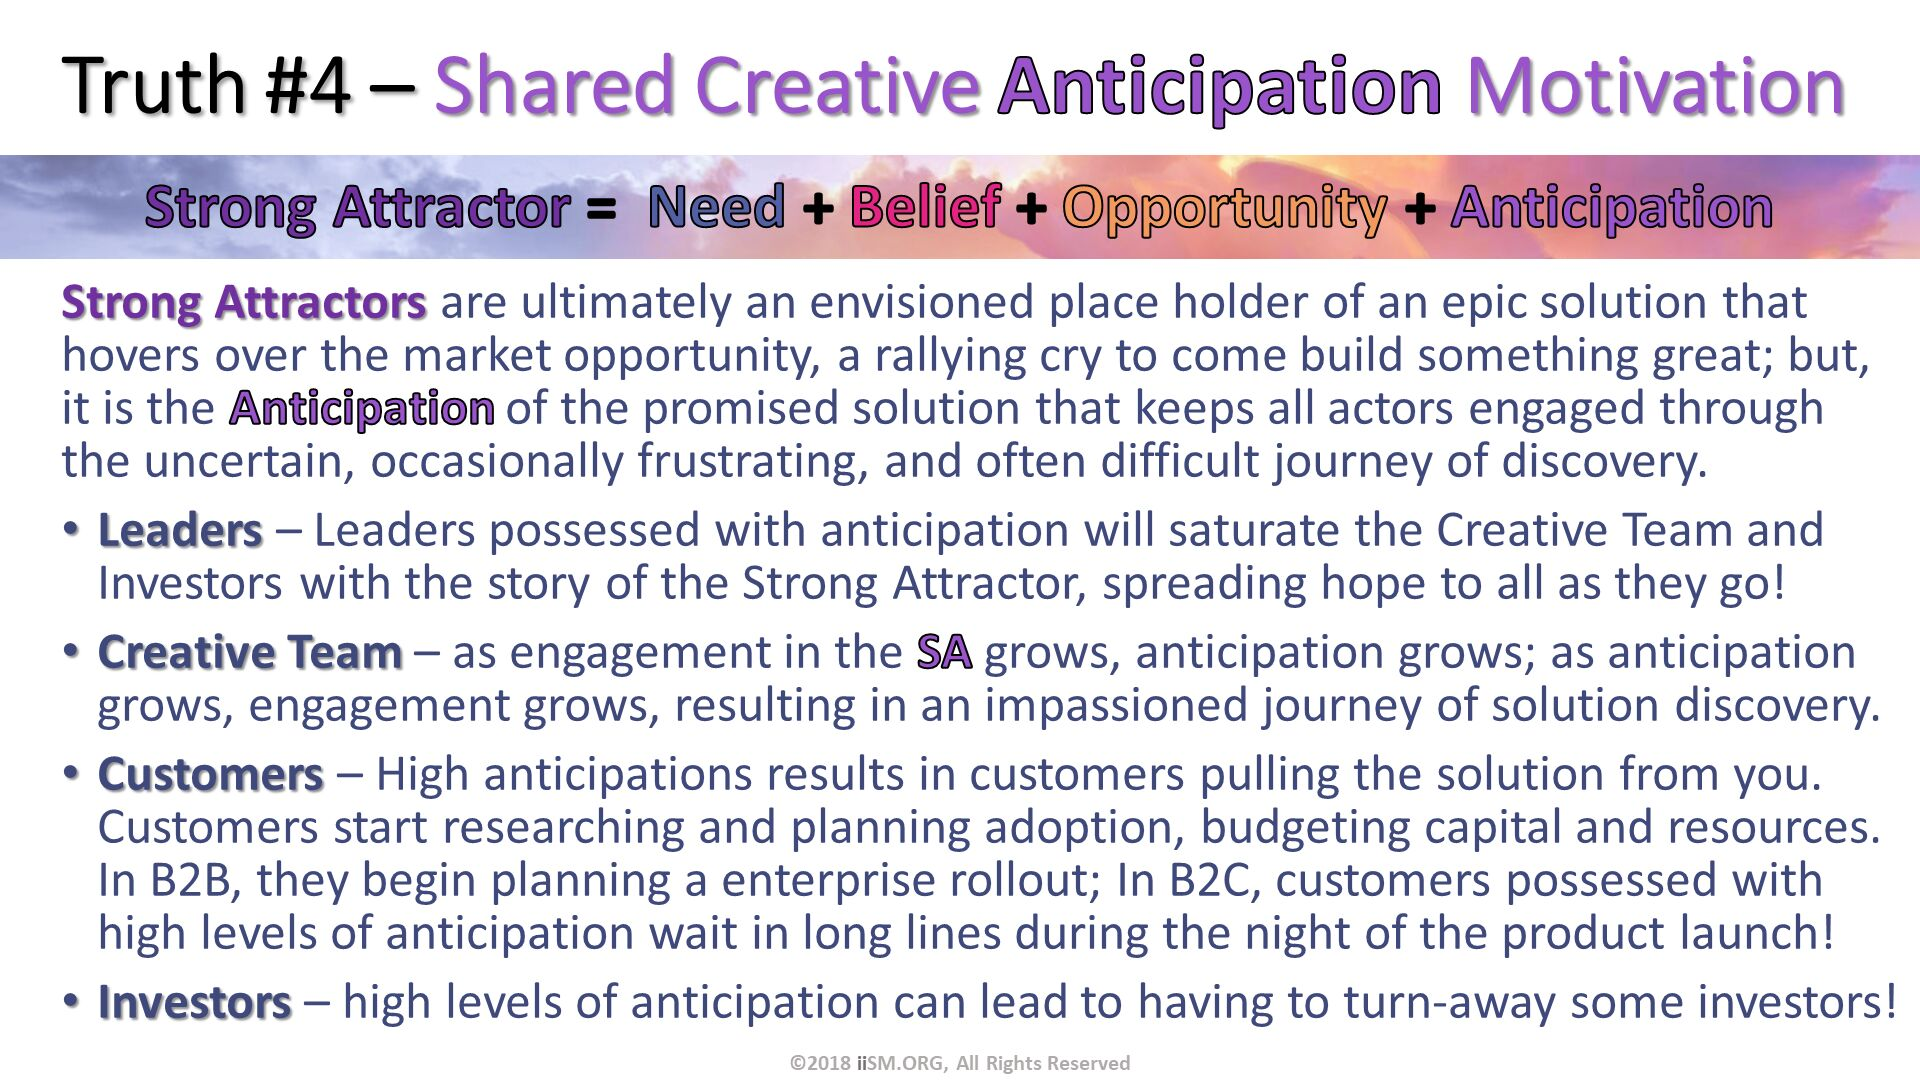 Truth #4 – Shared Creative Anticipation Motivation. Strong Attractors are ultimately an envisioned place holder of an epic solution that hovers over the market opportunity, a rallying cry to come build something great; but, it is the Anticipation of the promised solution that keeps all actors engaged through the uncertain, occasionally frustrating, and often difficult journey of discovery. Leaders – Leaders possessed with anticipation will saturate the Creative Team and Investors with the story of the Strong Attractor, spreading hope to all as they go! Creative Team – as engagement in the SA grows, anticipation grows; as anticipation grows, engagement grows, resulting in an impassioned journey of solution discovery. Customers – High anticipations results in customers pulling the solution from you.   Customers start researching and planning adoption, budgeting capital and resources. In B2B, they begin planning a enterprise rollout; In B2C, customers possessed with high levels of anticipation wait in long lines during the night of the product launch! Investors – high levels of anticipation can lead to having to turn-away some investors!. ©2018 iiSM.ORG, All Rights Reserved.